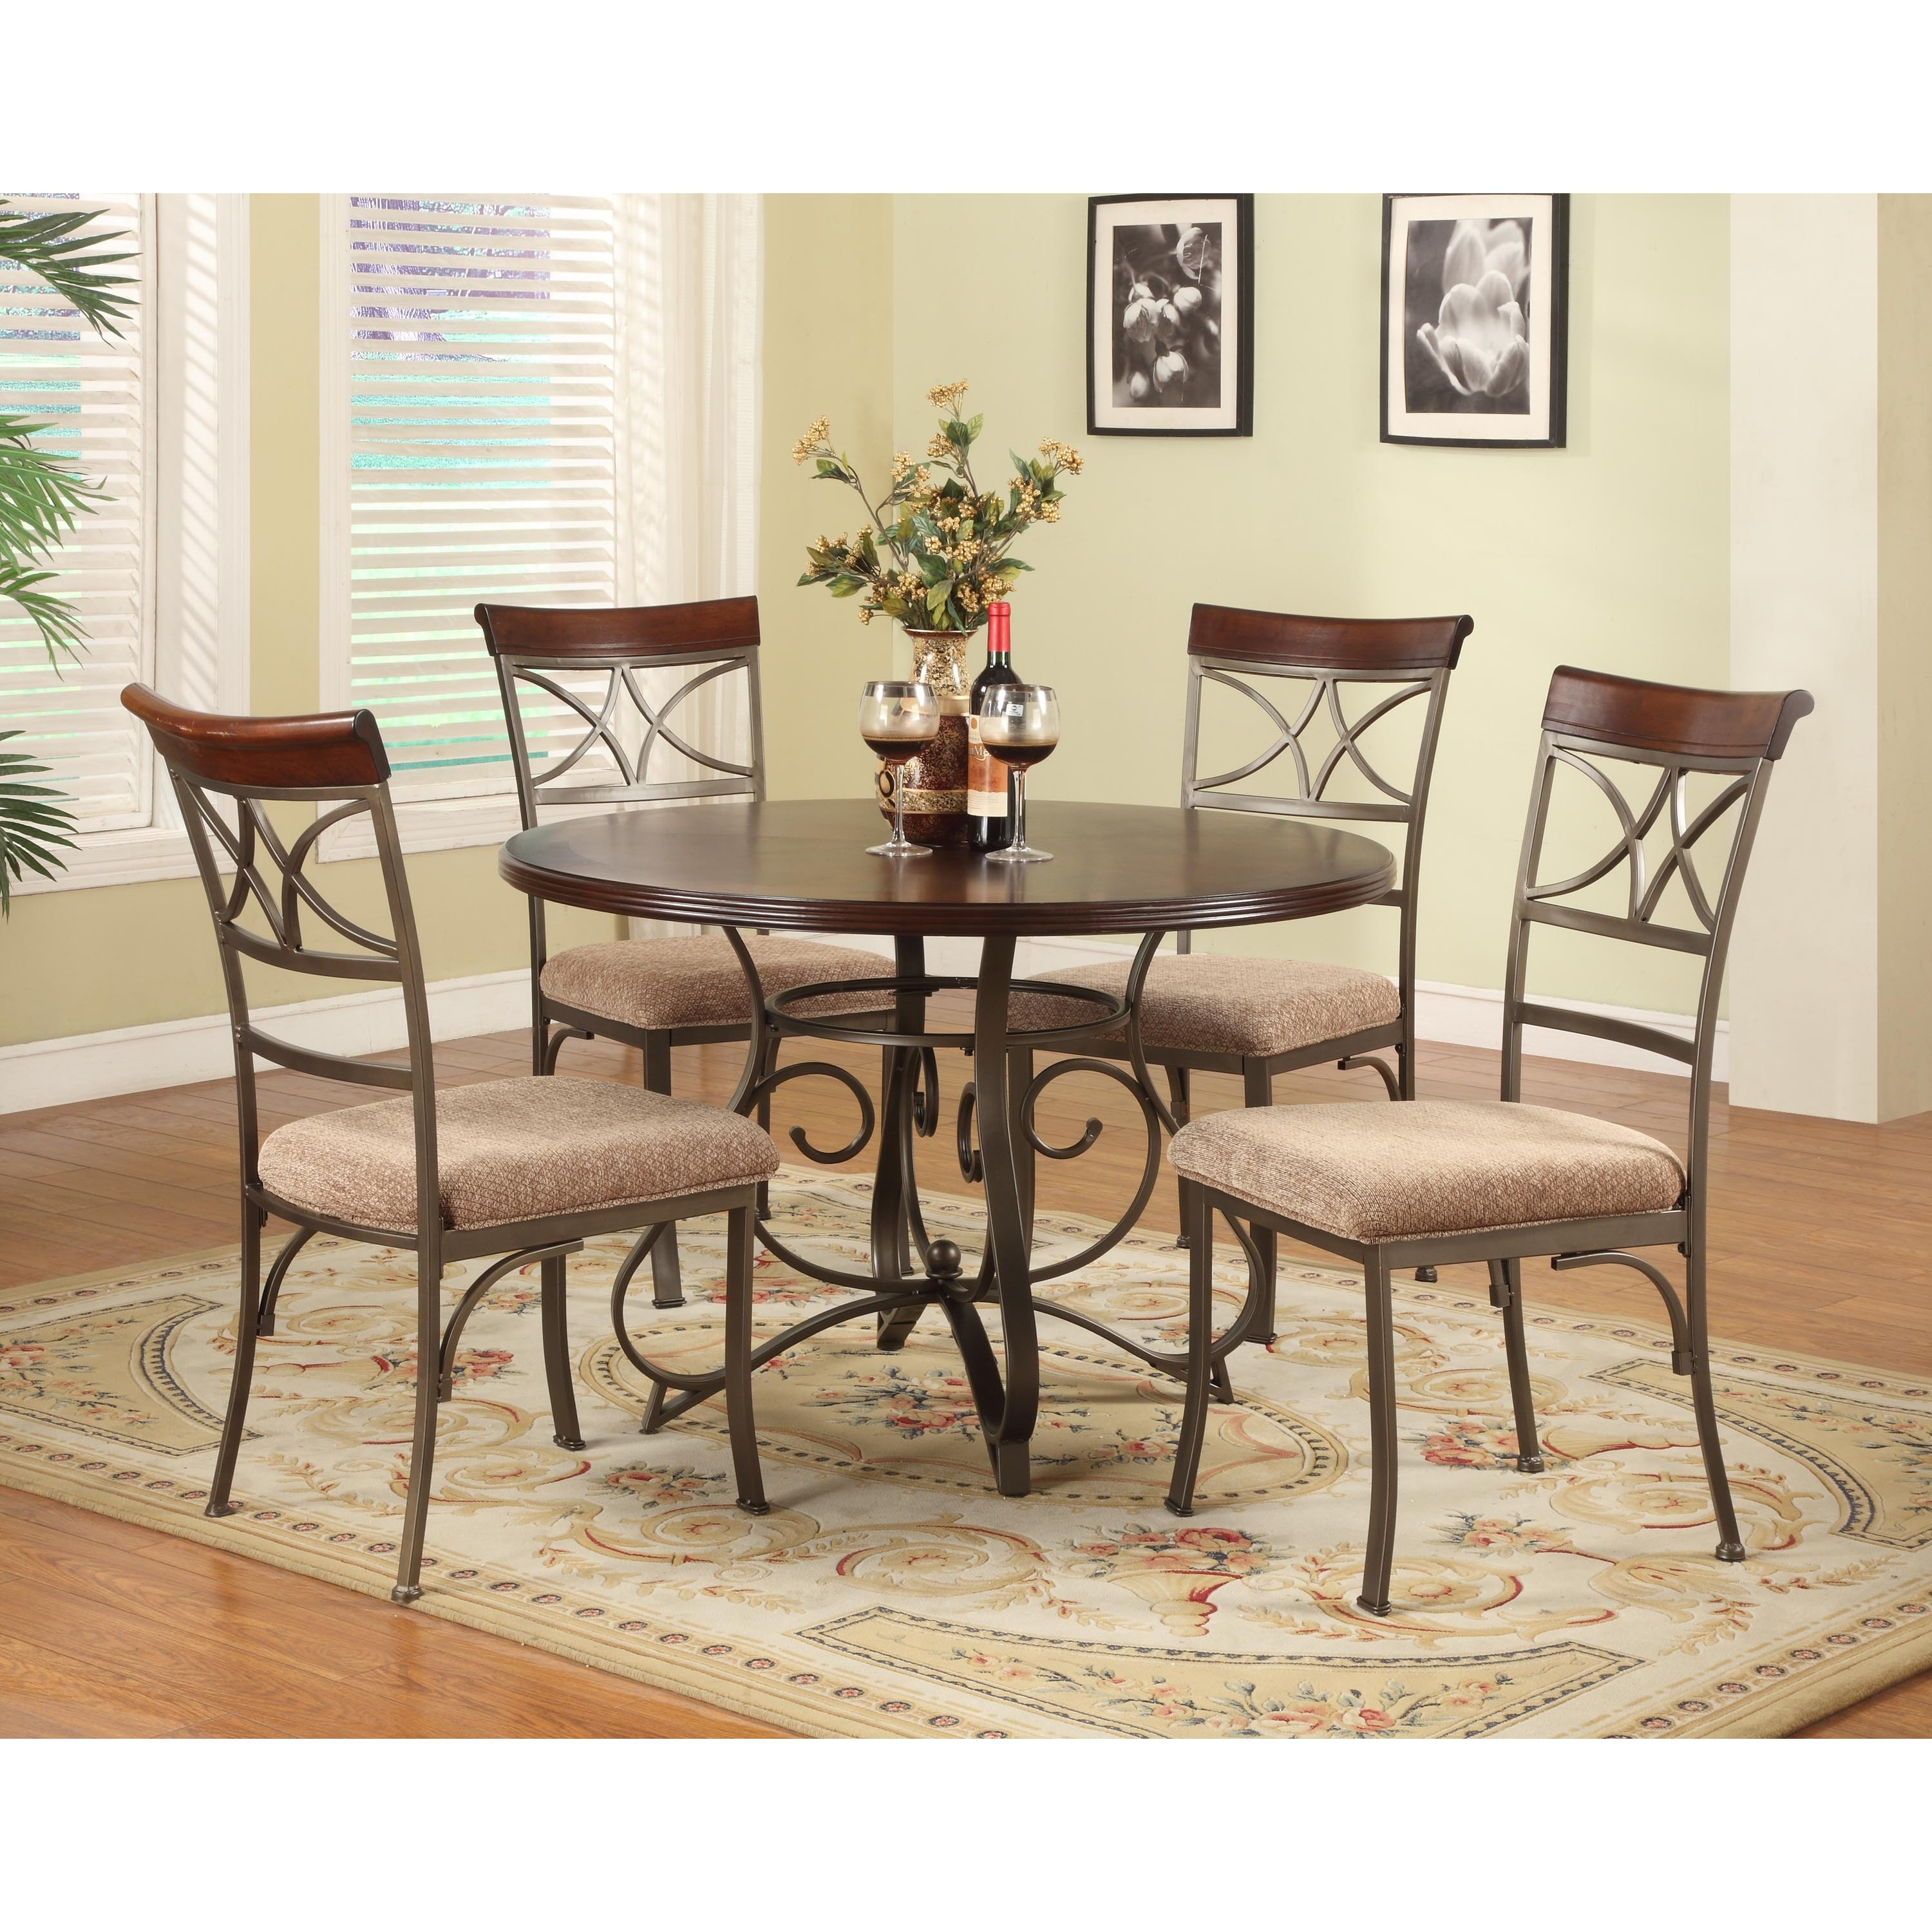 Powell 5-piece Eden Dining Room Set by Overstock